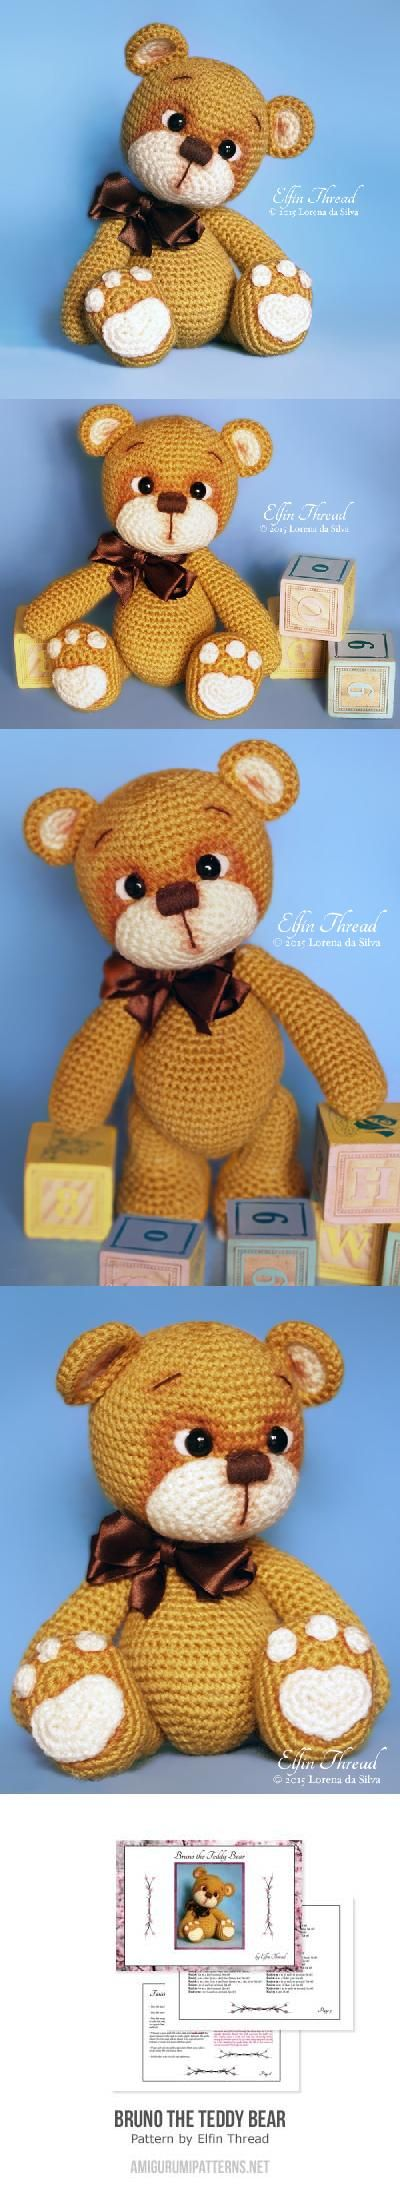 Bruno the Teddy Bear amigurumi pattern by Elfin Thread